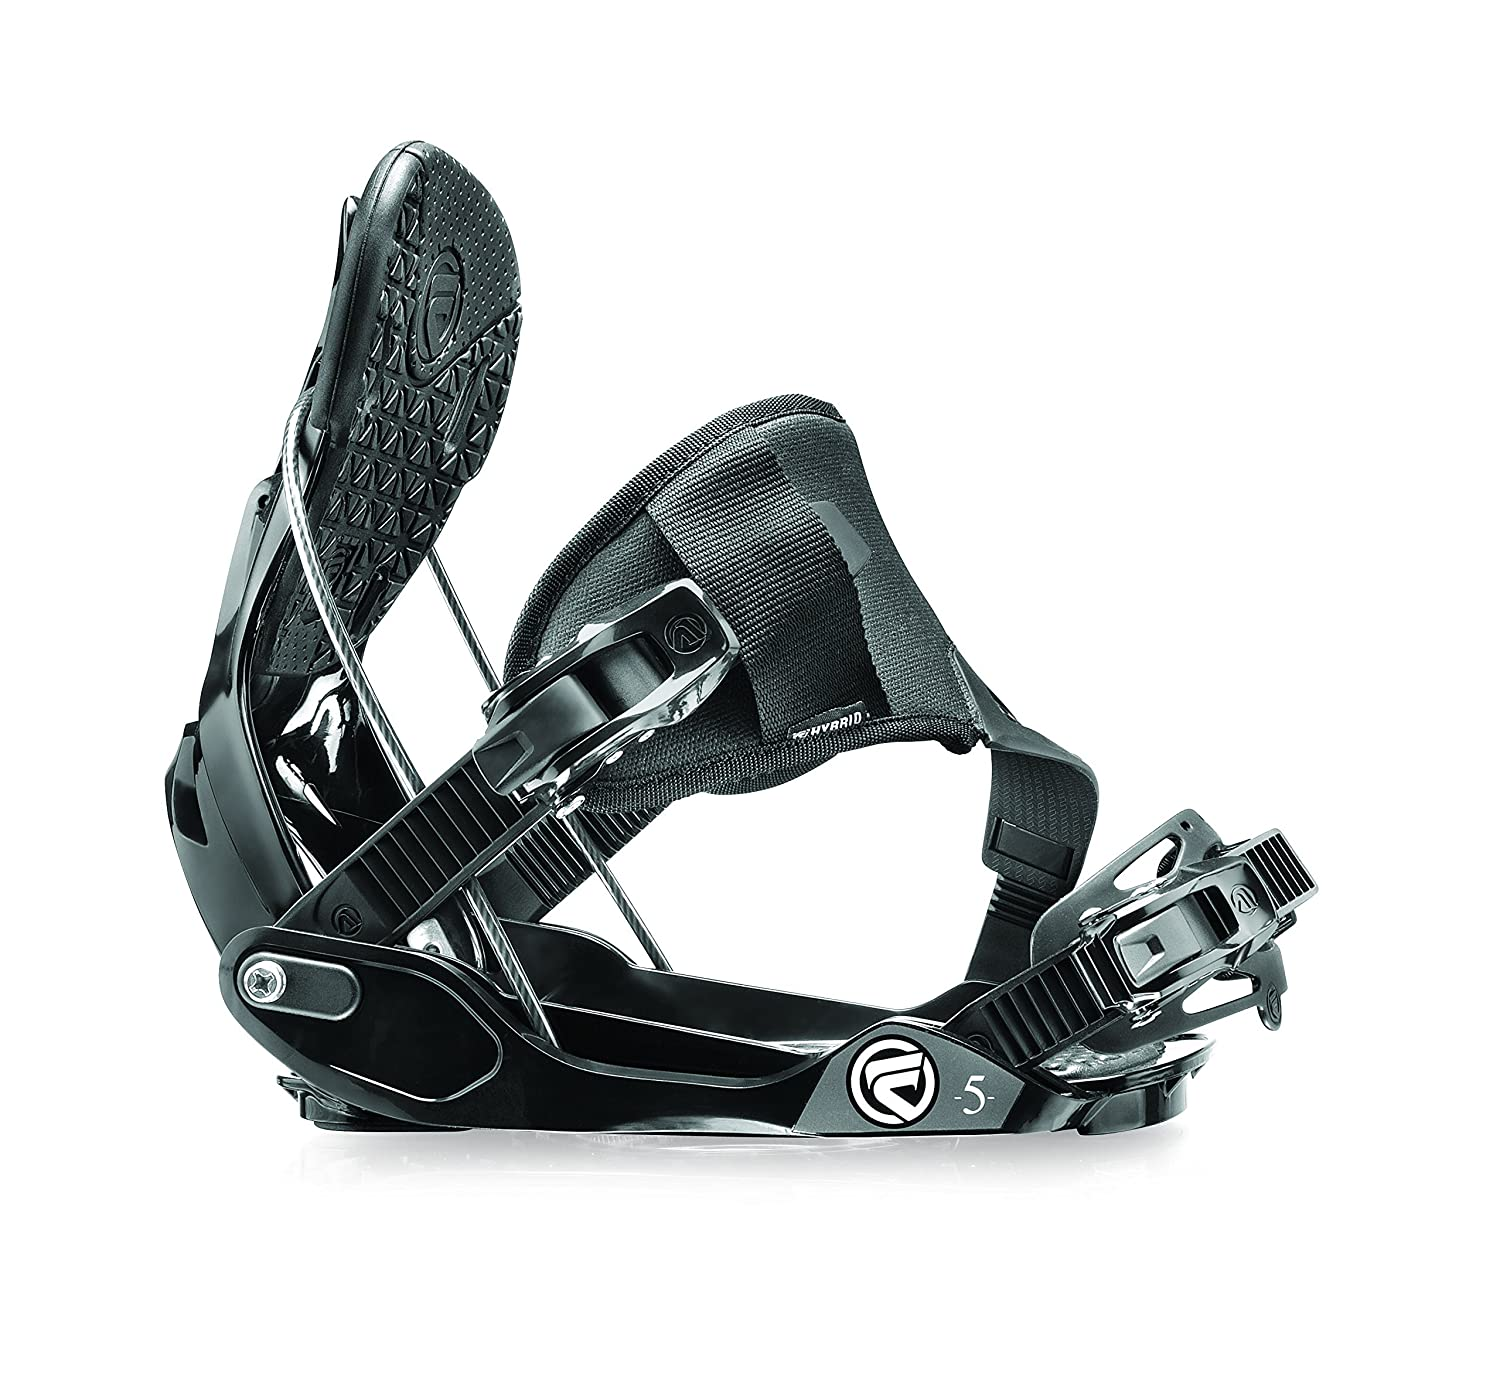 Top 10 Best Snowboard Bindings (2020 Reviews & Buying Guide) 8